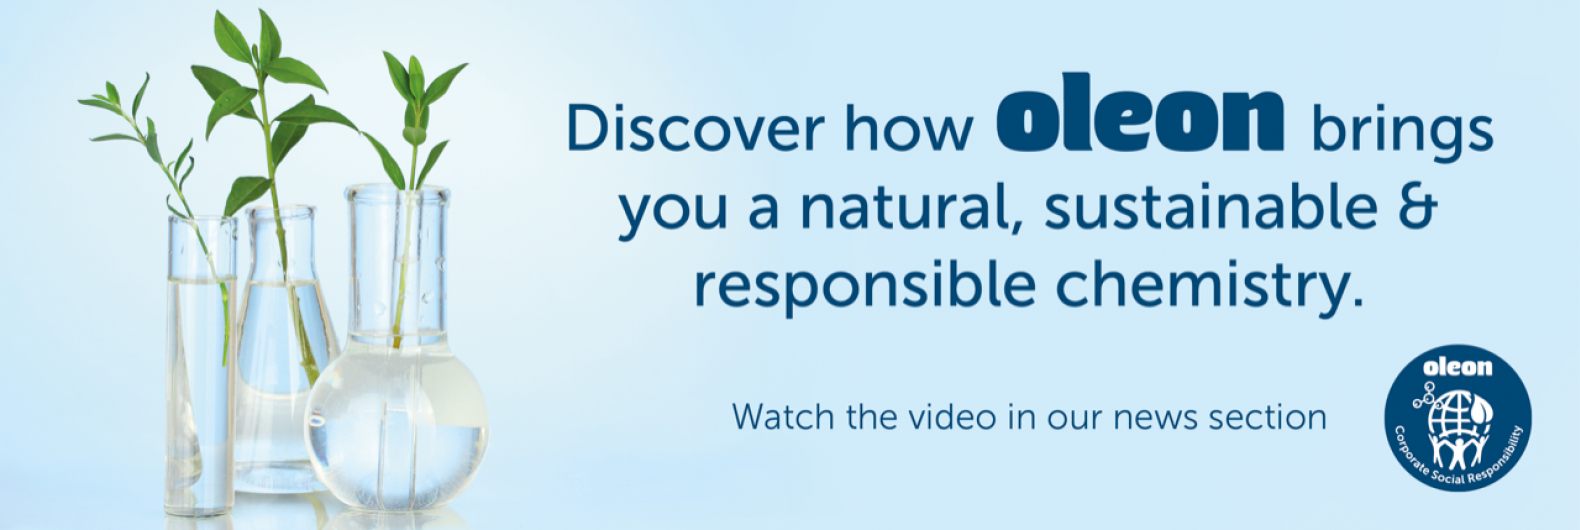 Natural, sustainable and responsible chemistry